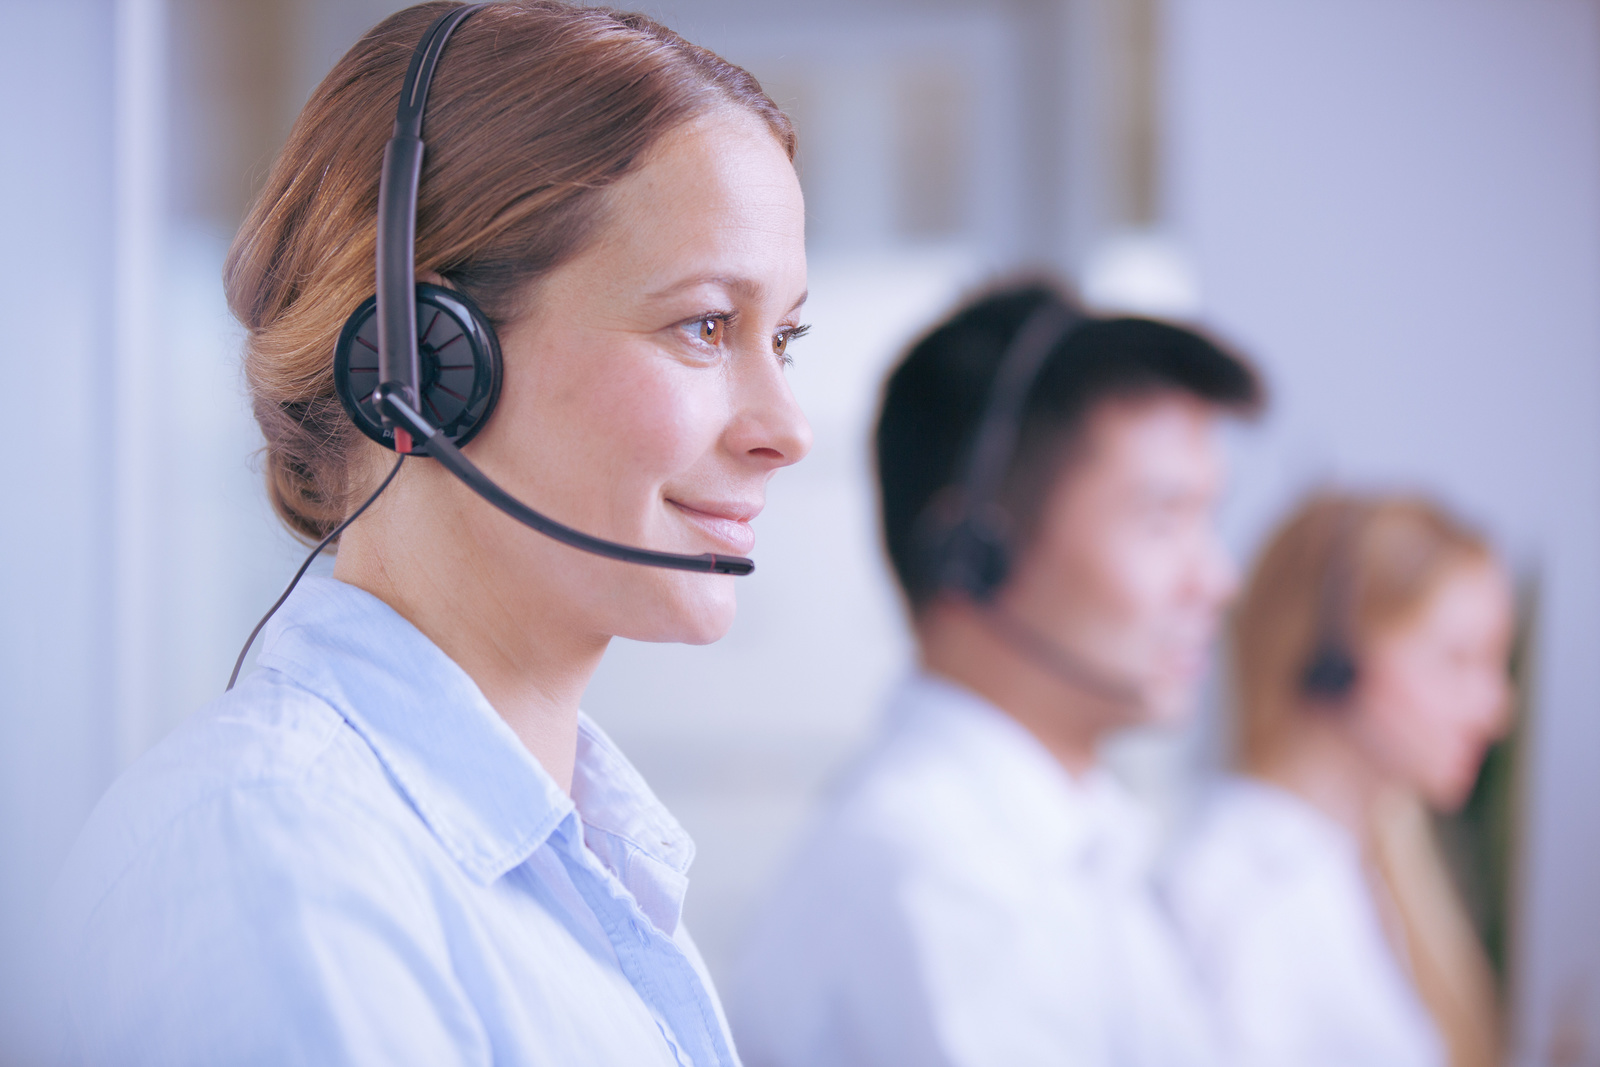 Bosch emergency service associates are available 24 hours a day